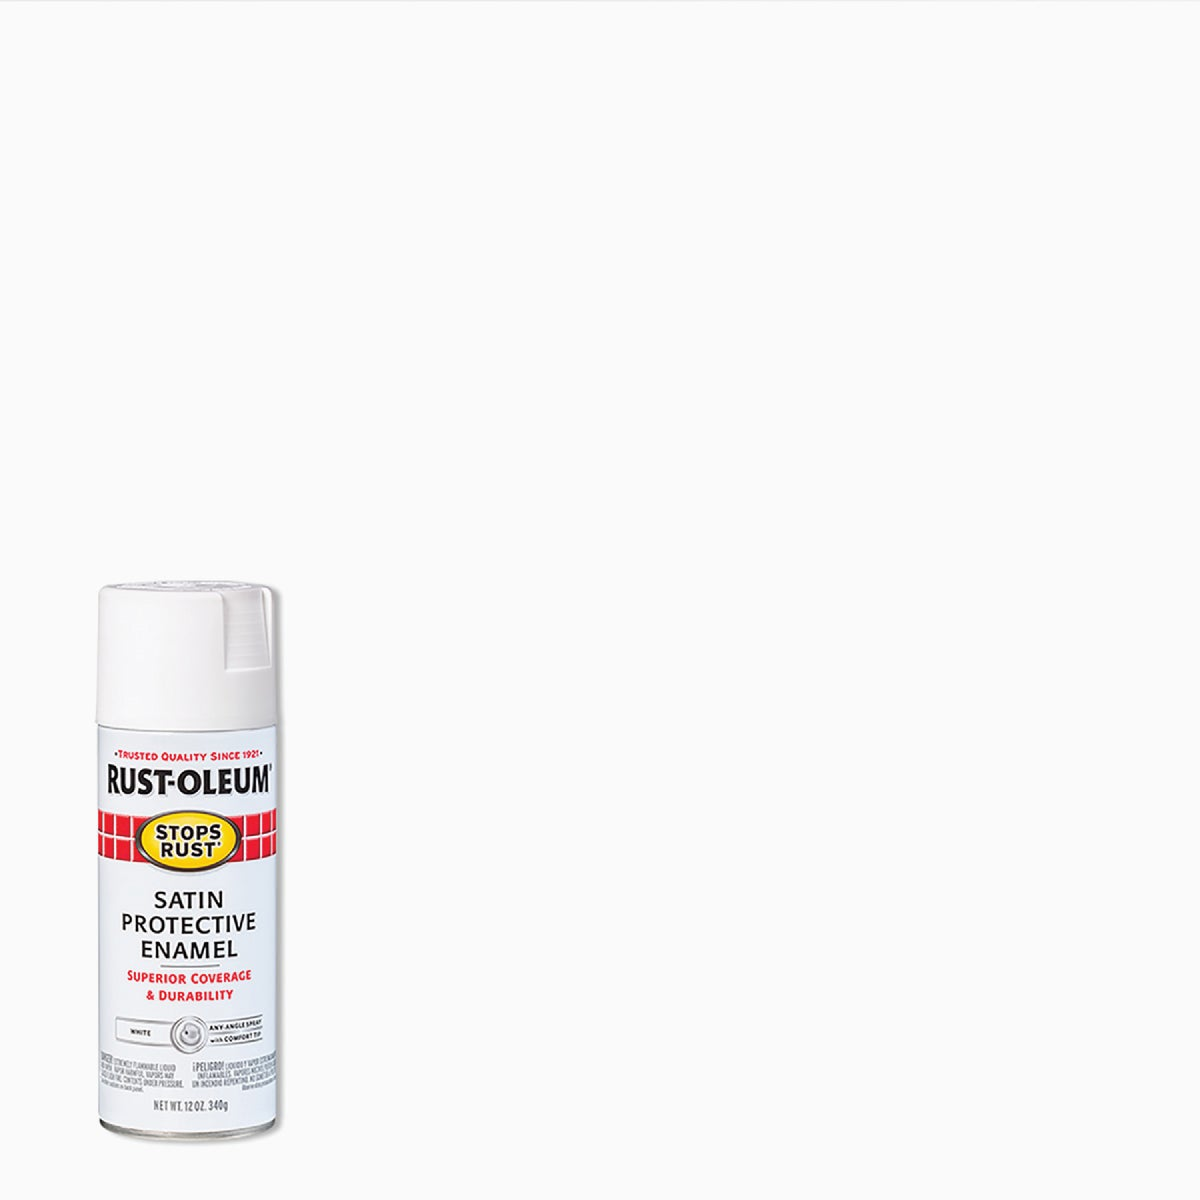 SATIN WHITE SPRAY PAINT - 7791-830 by Rustoleum